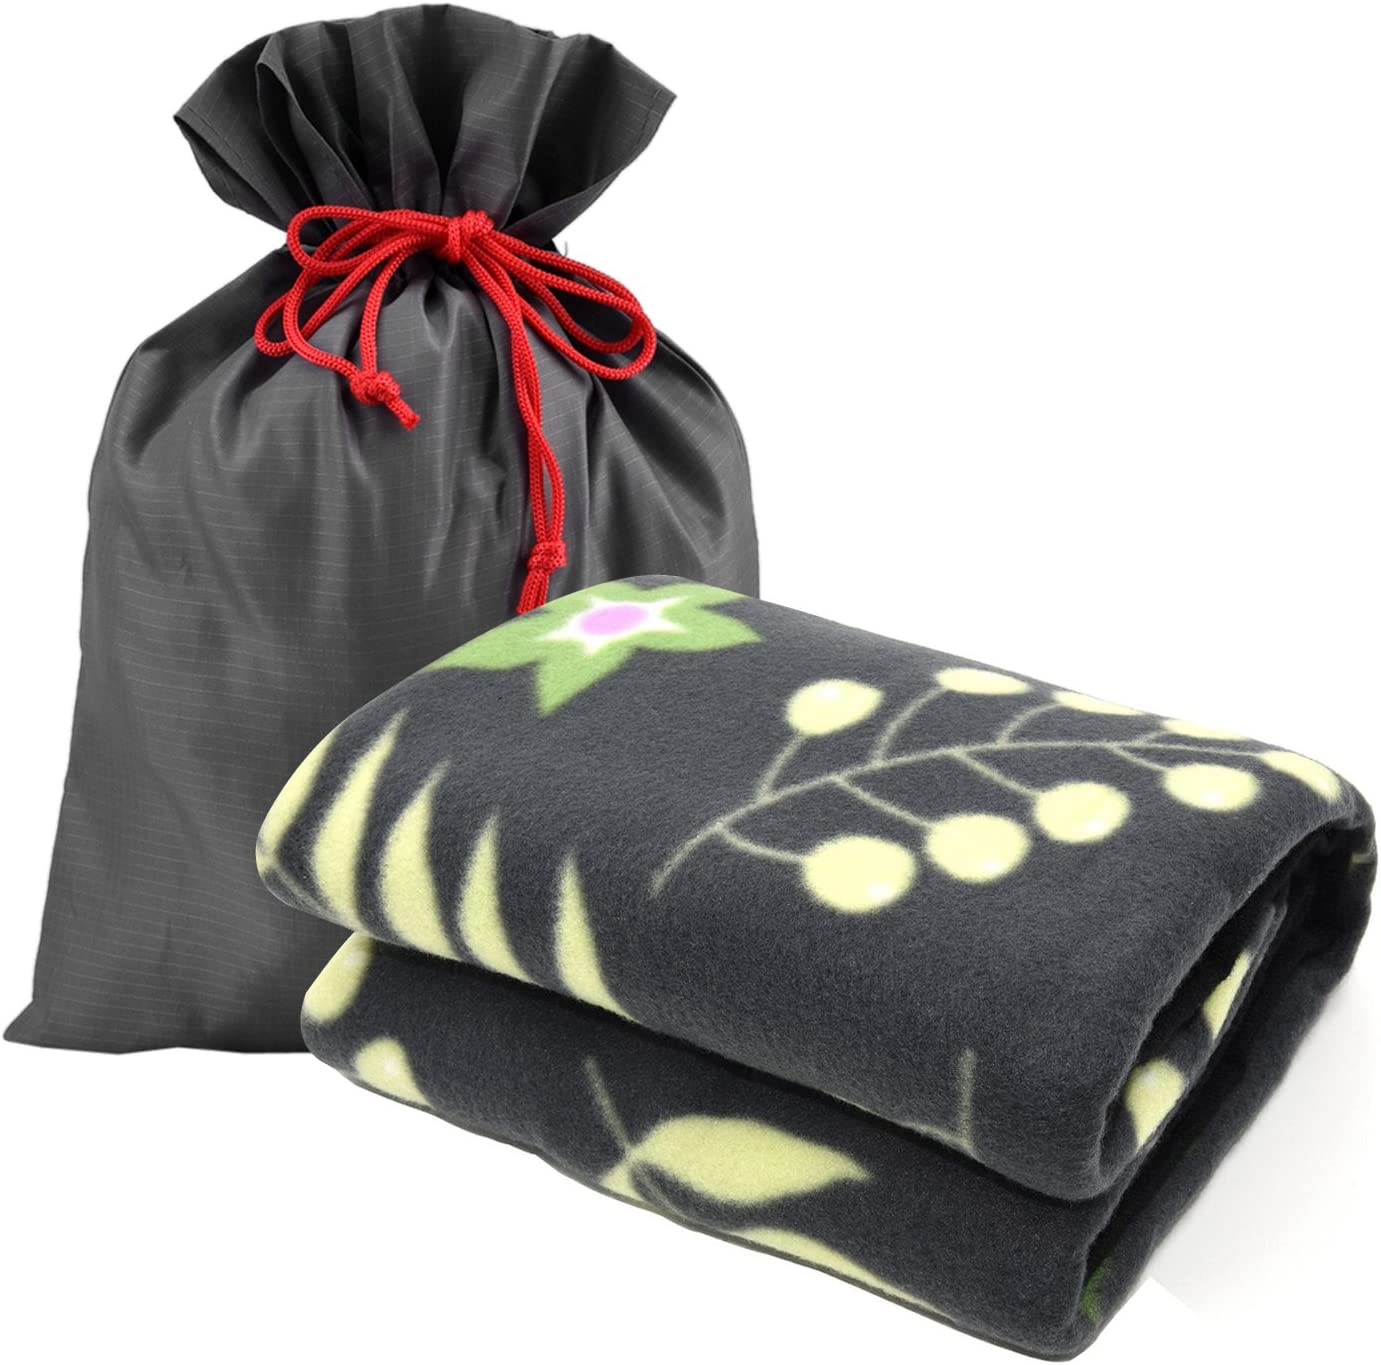 Forestfish Fleece Throw Blanket Cozy Soft Portable Travel Blanket